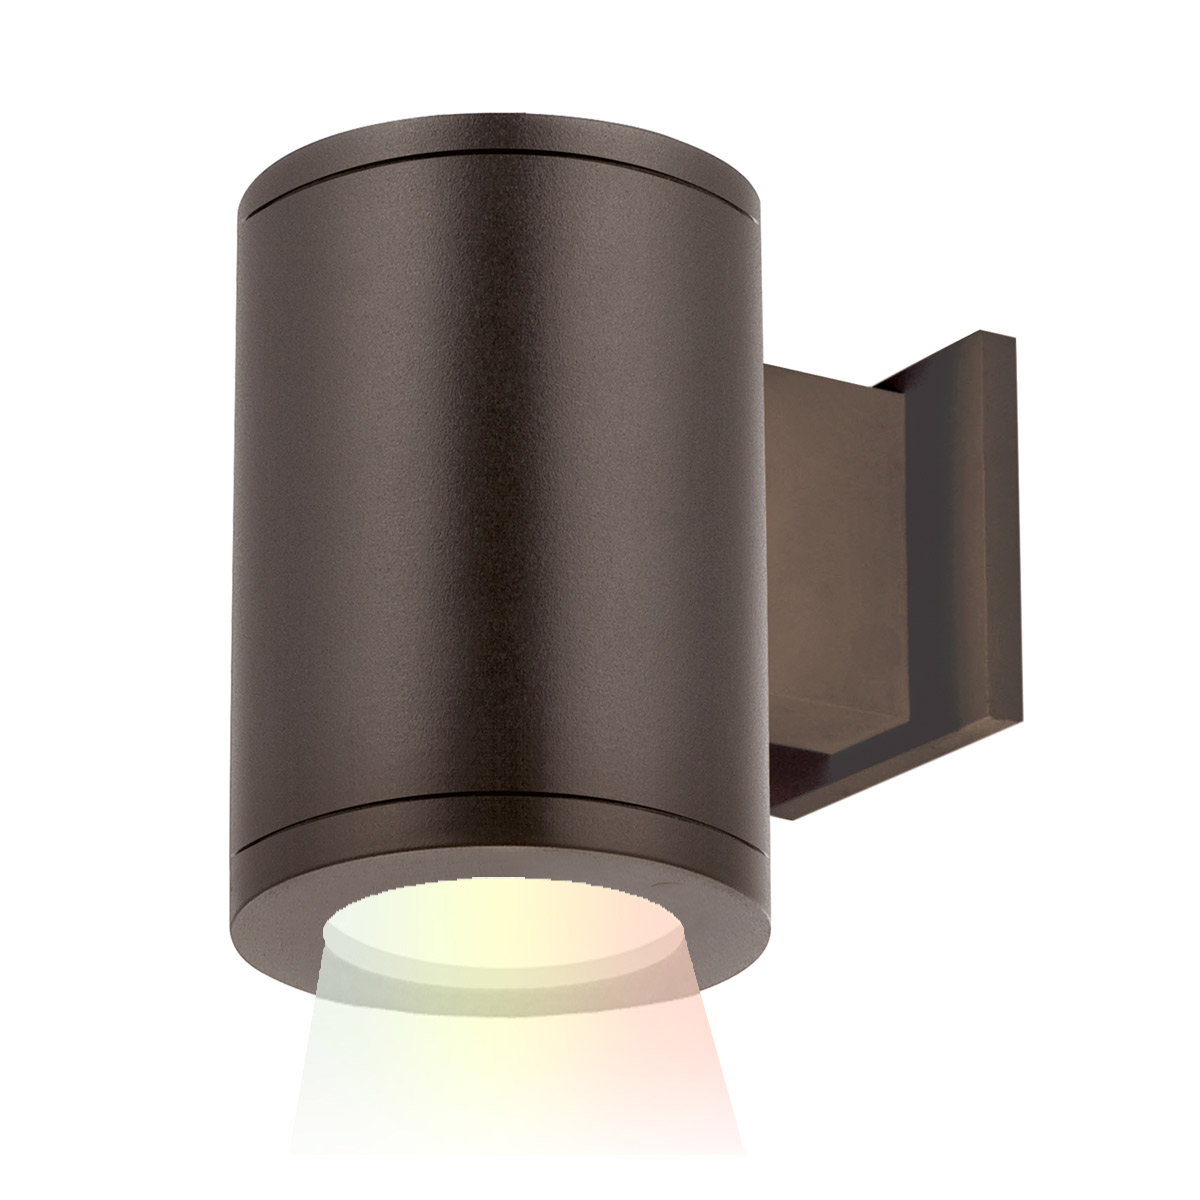 led wall mount from the tube architectural collection by wac lighting ds wd05 f40a bz